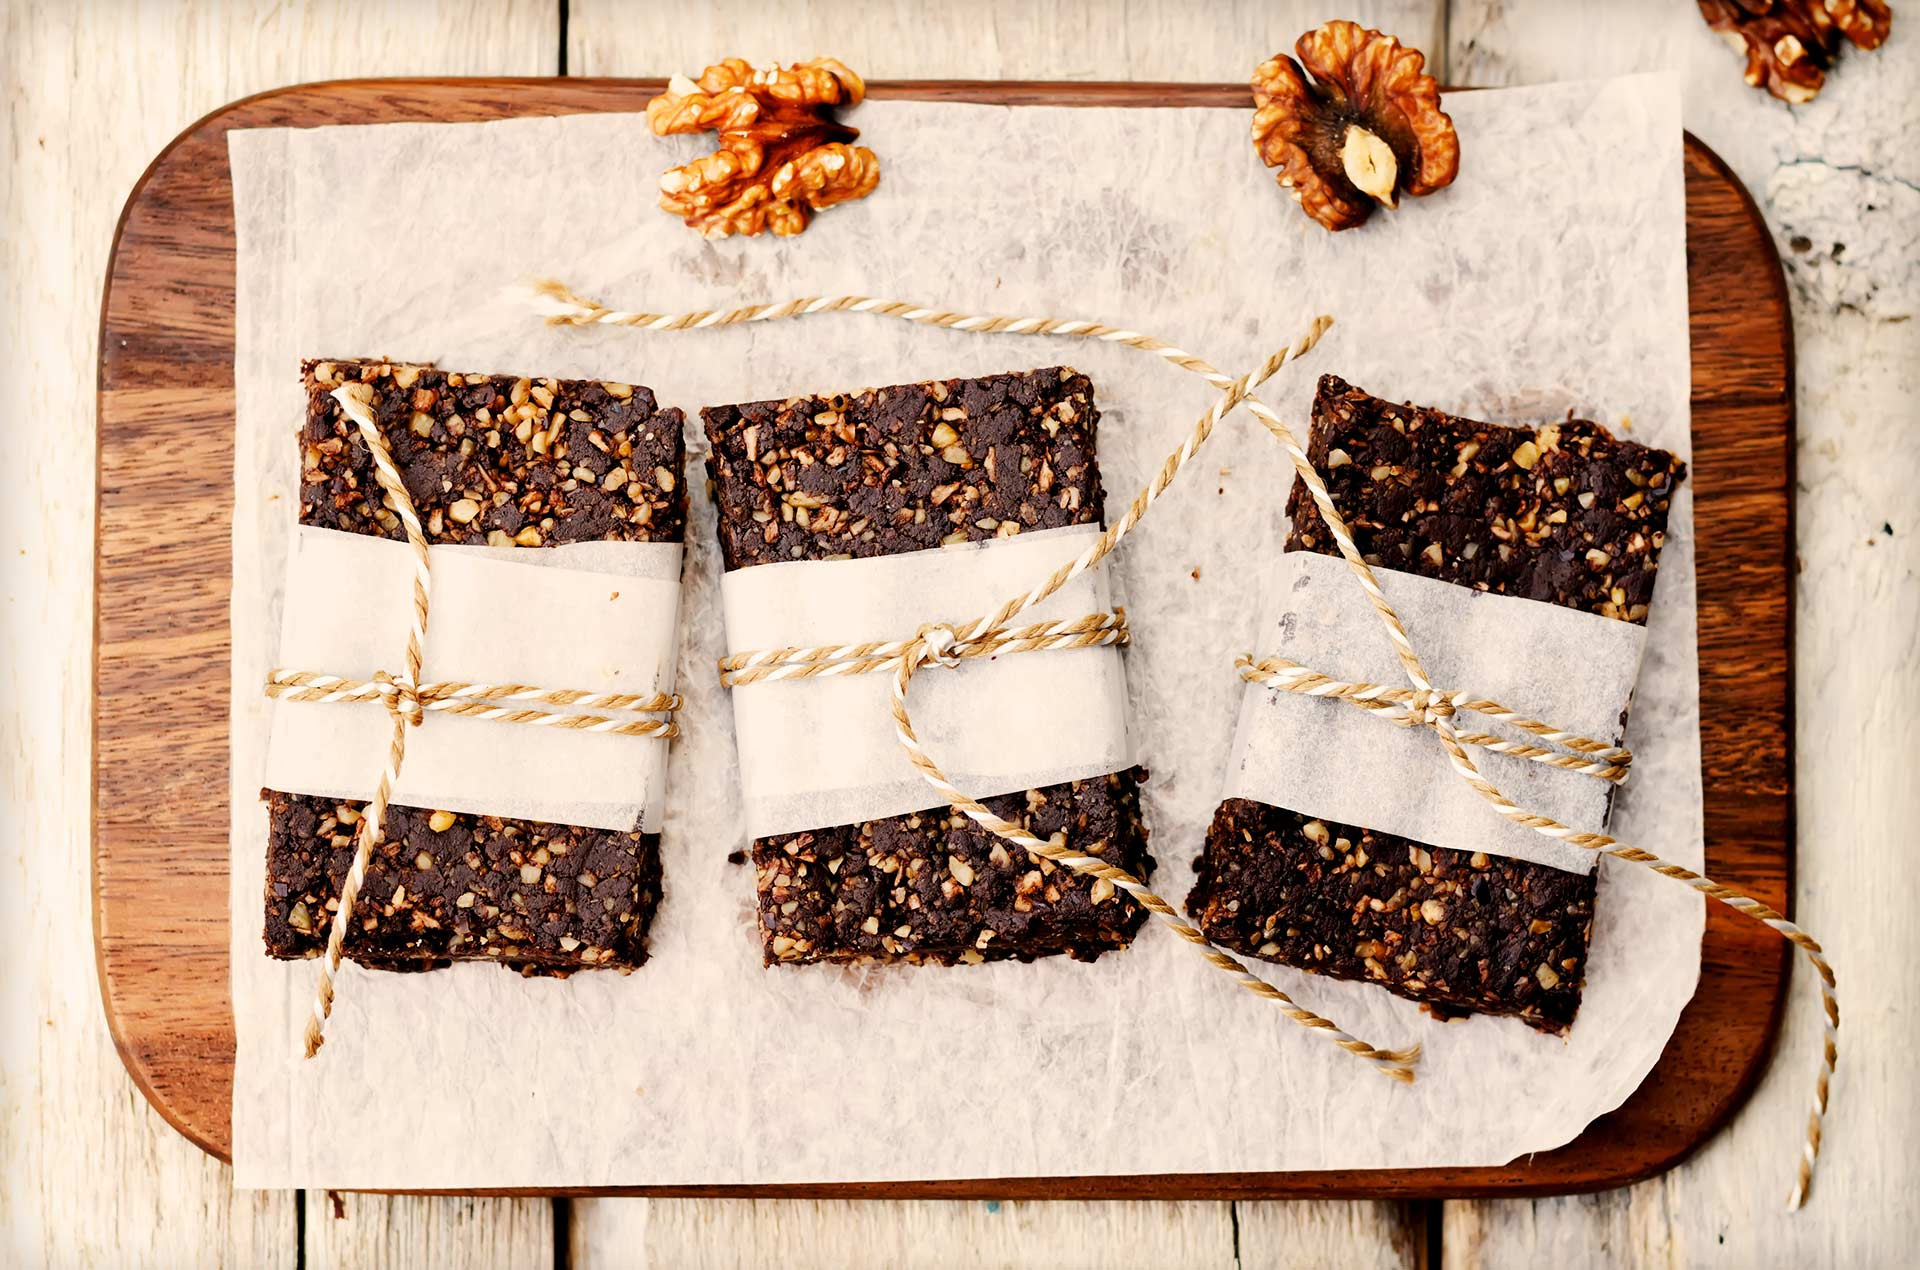 Low carb protein bars on wood